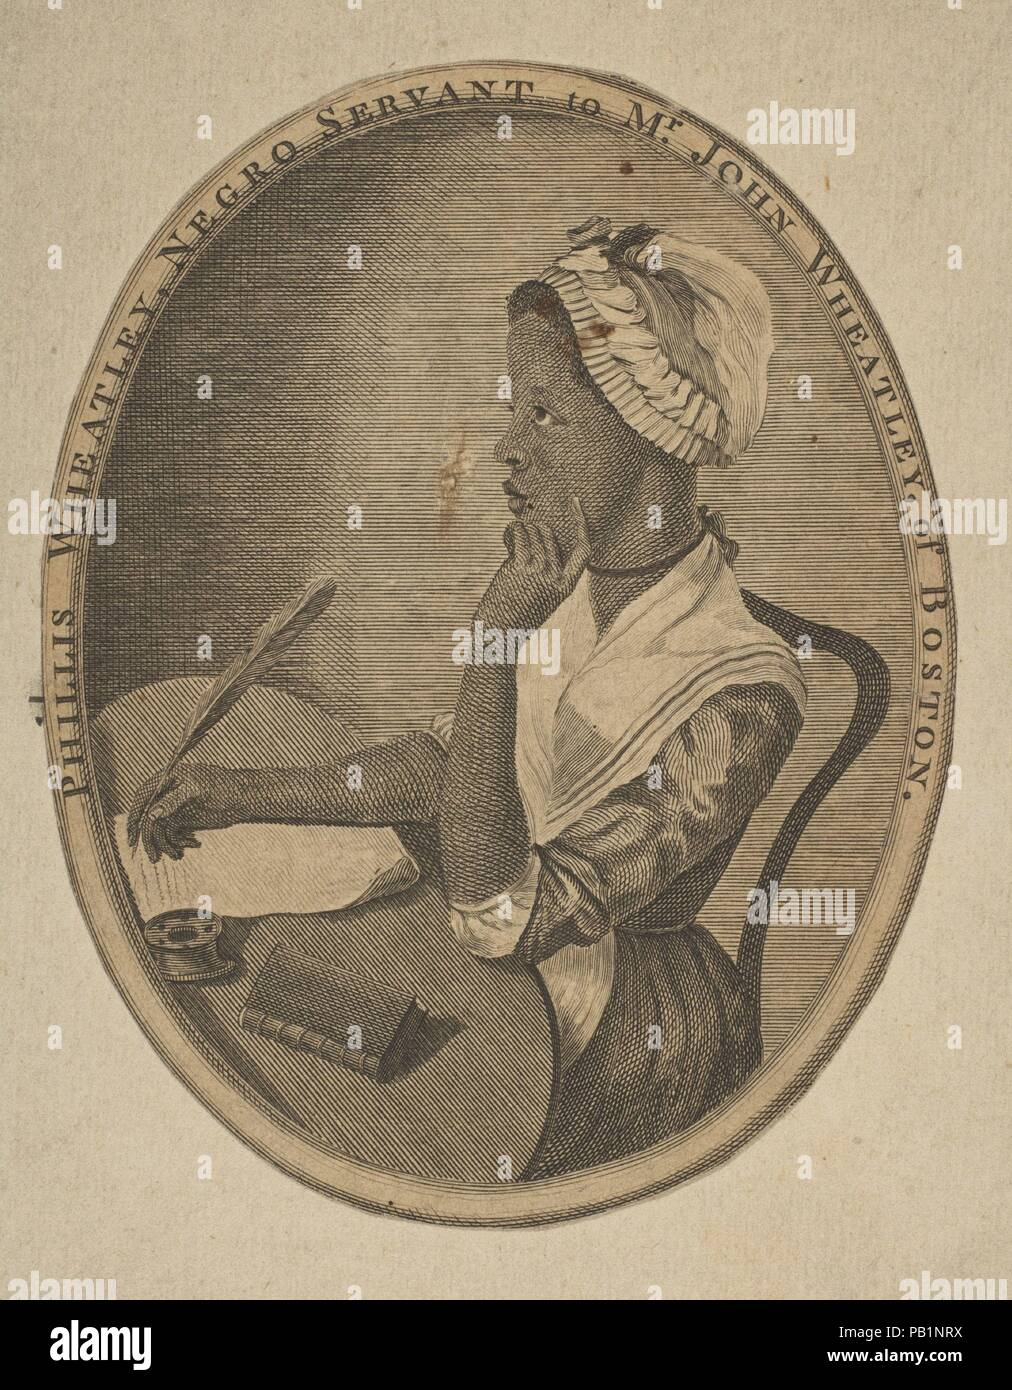 phillis wheatley life story